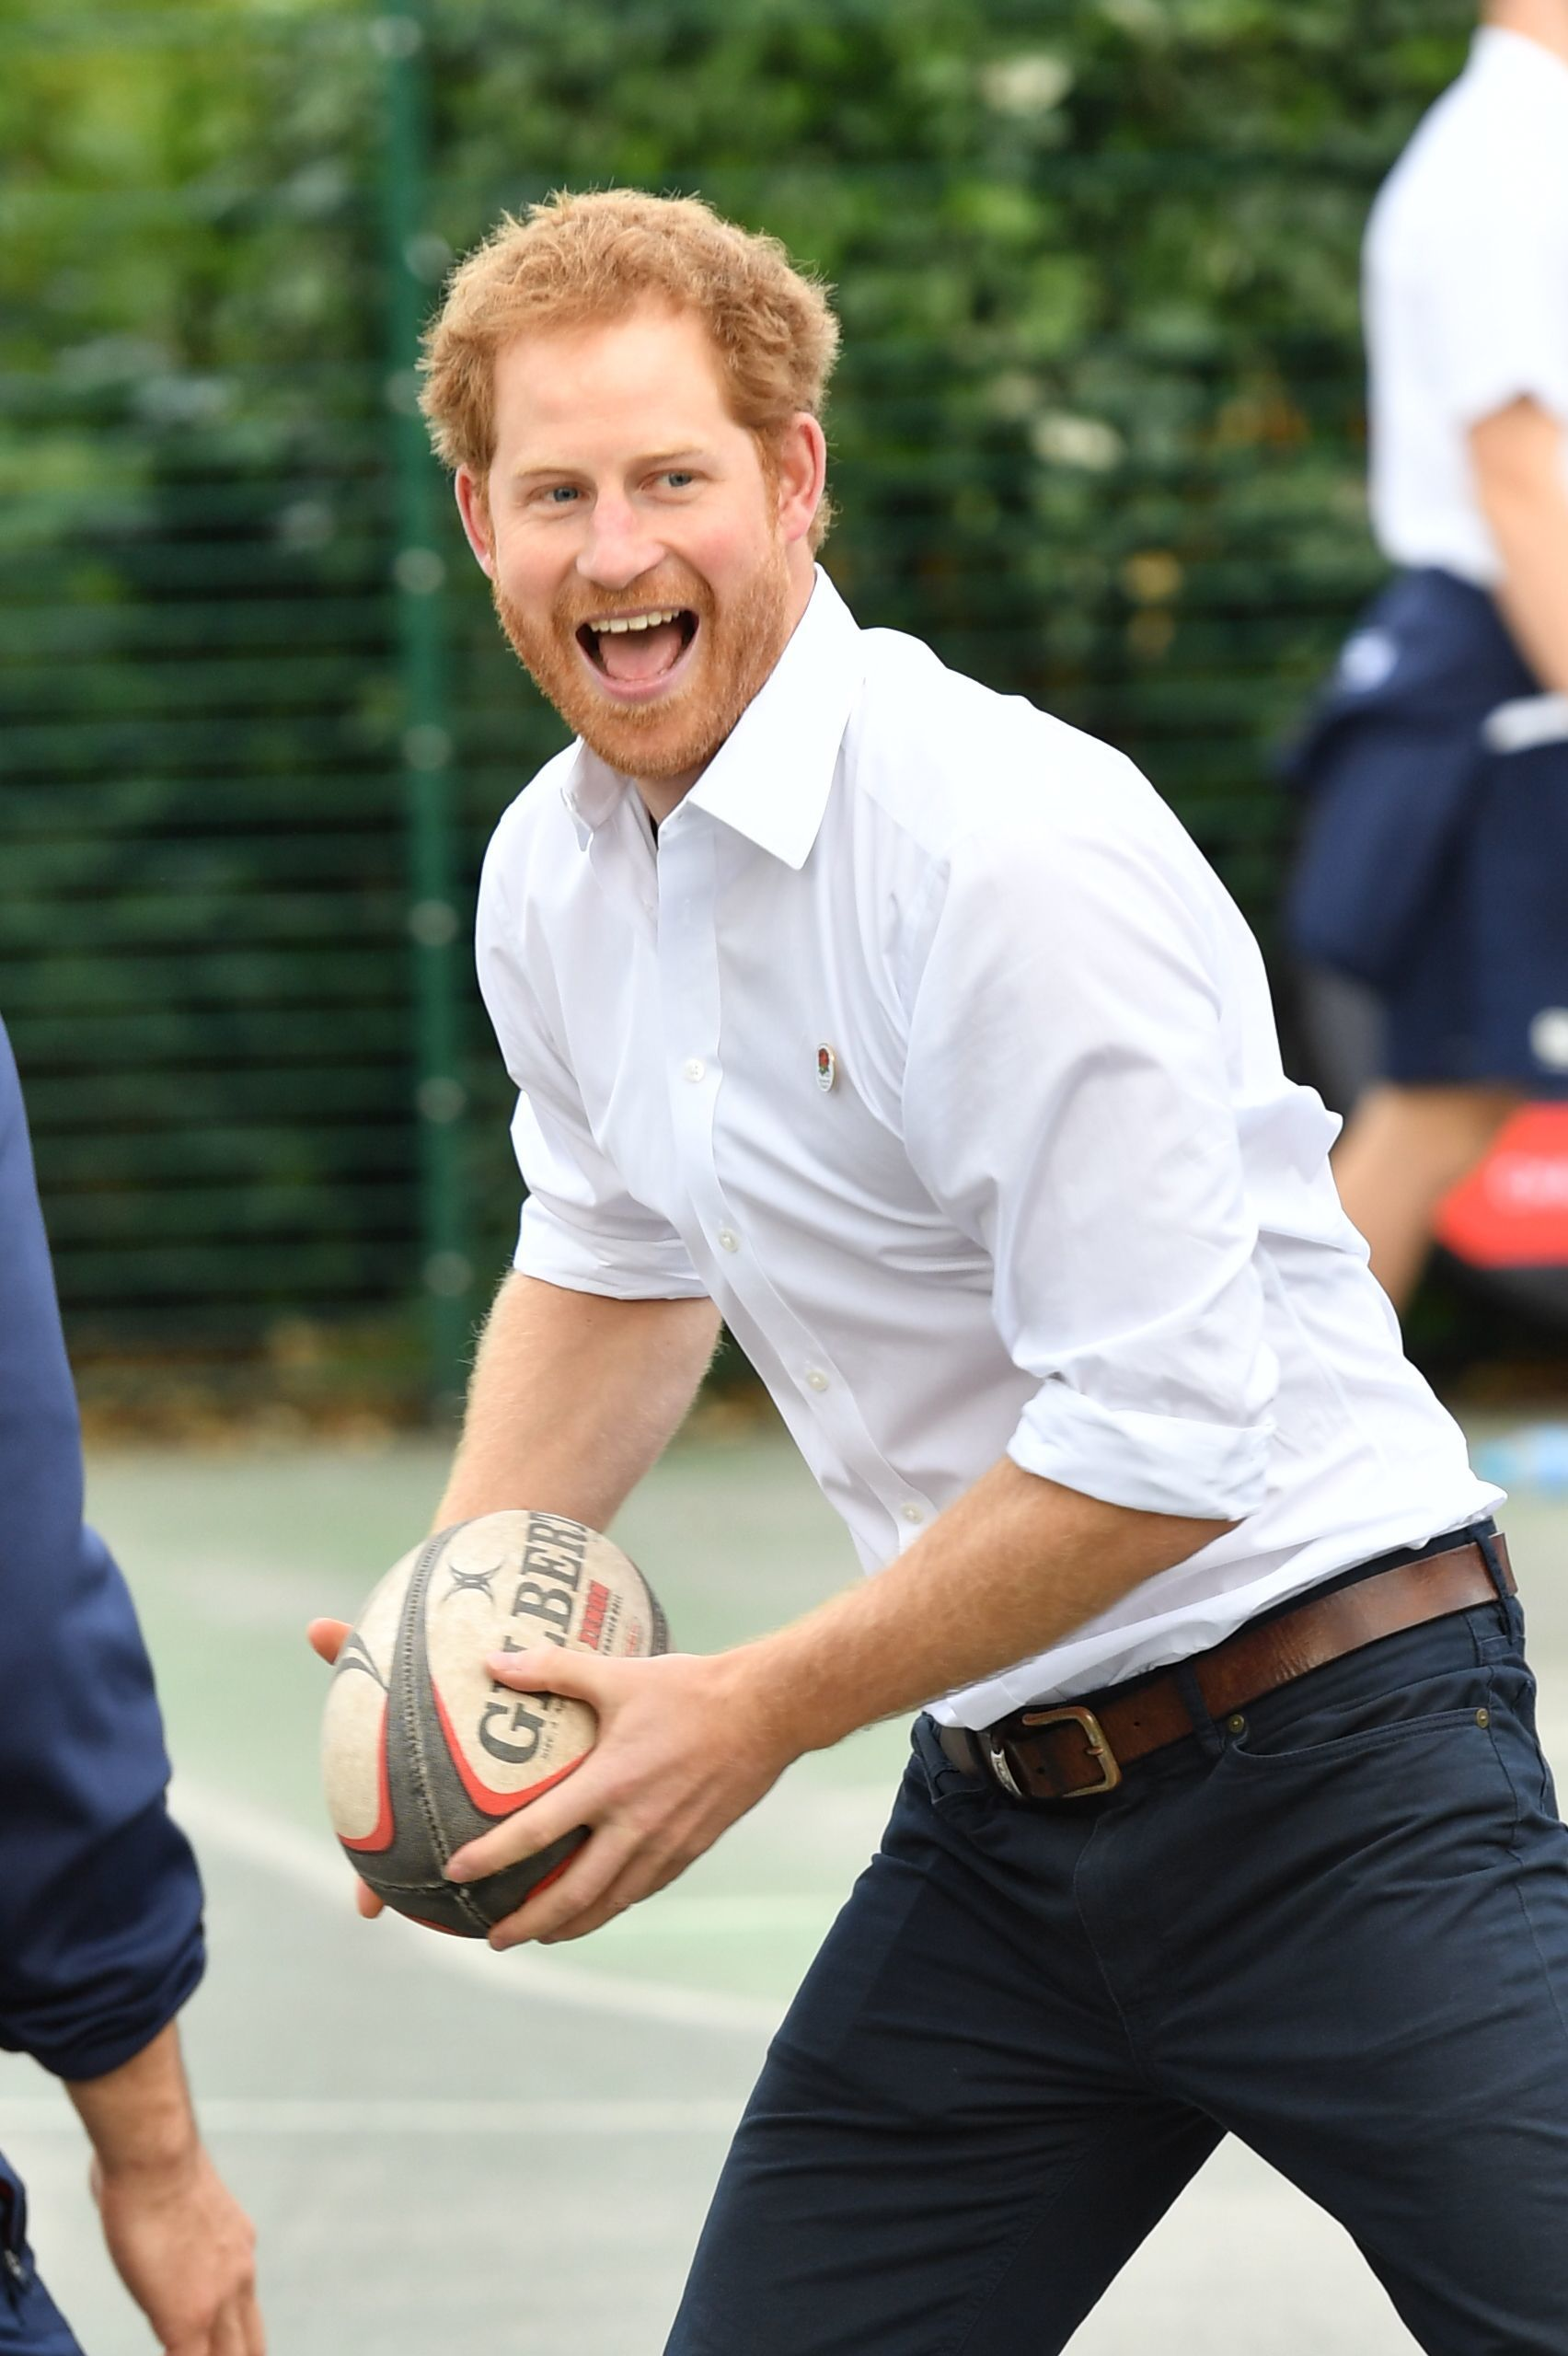 A 6 year old proposed to Prince Harry